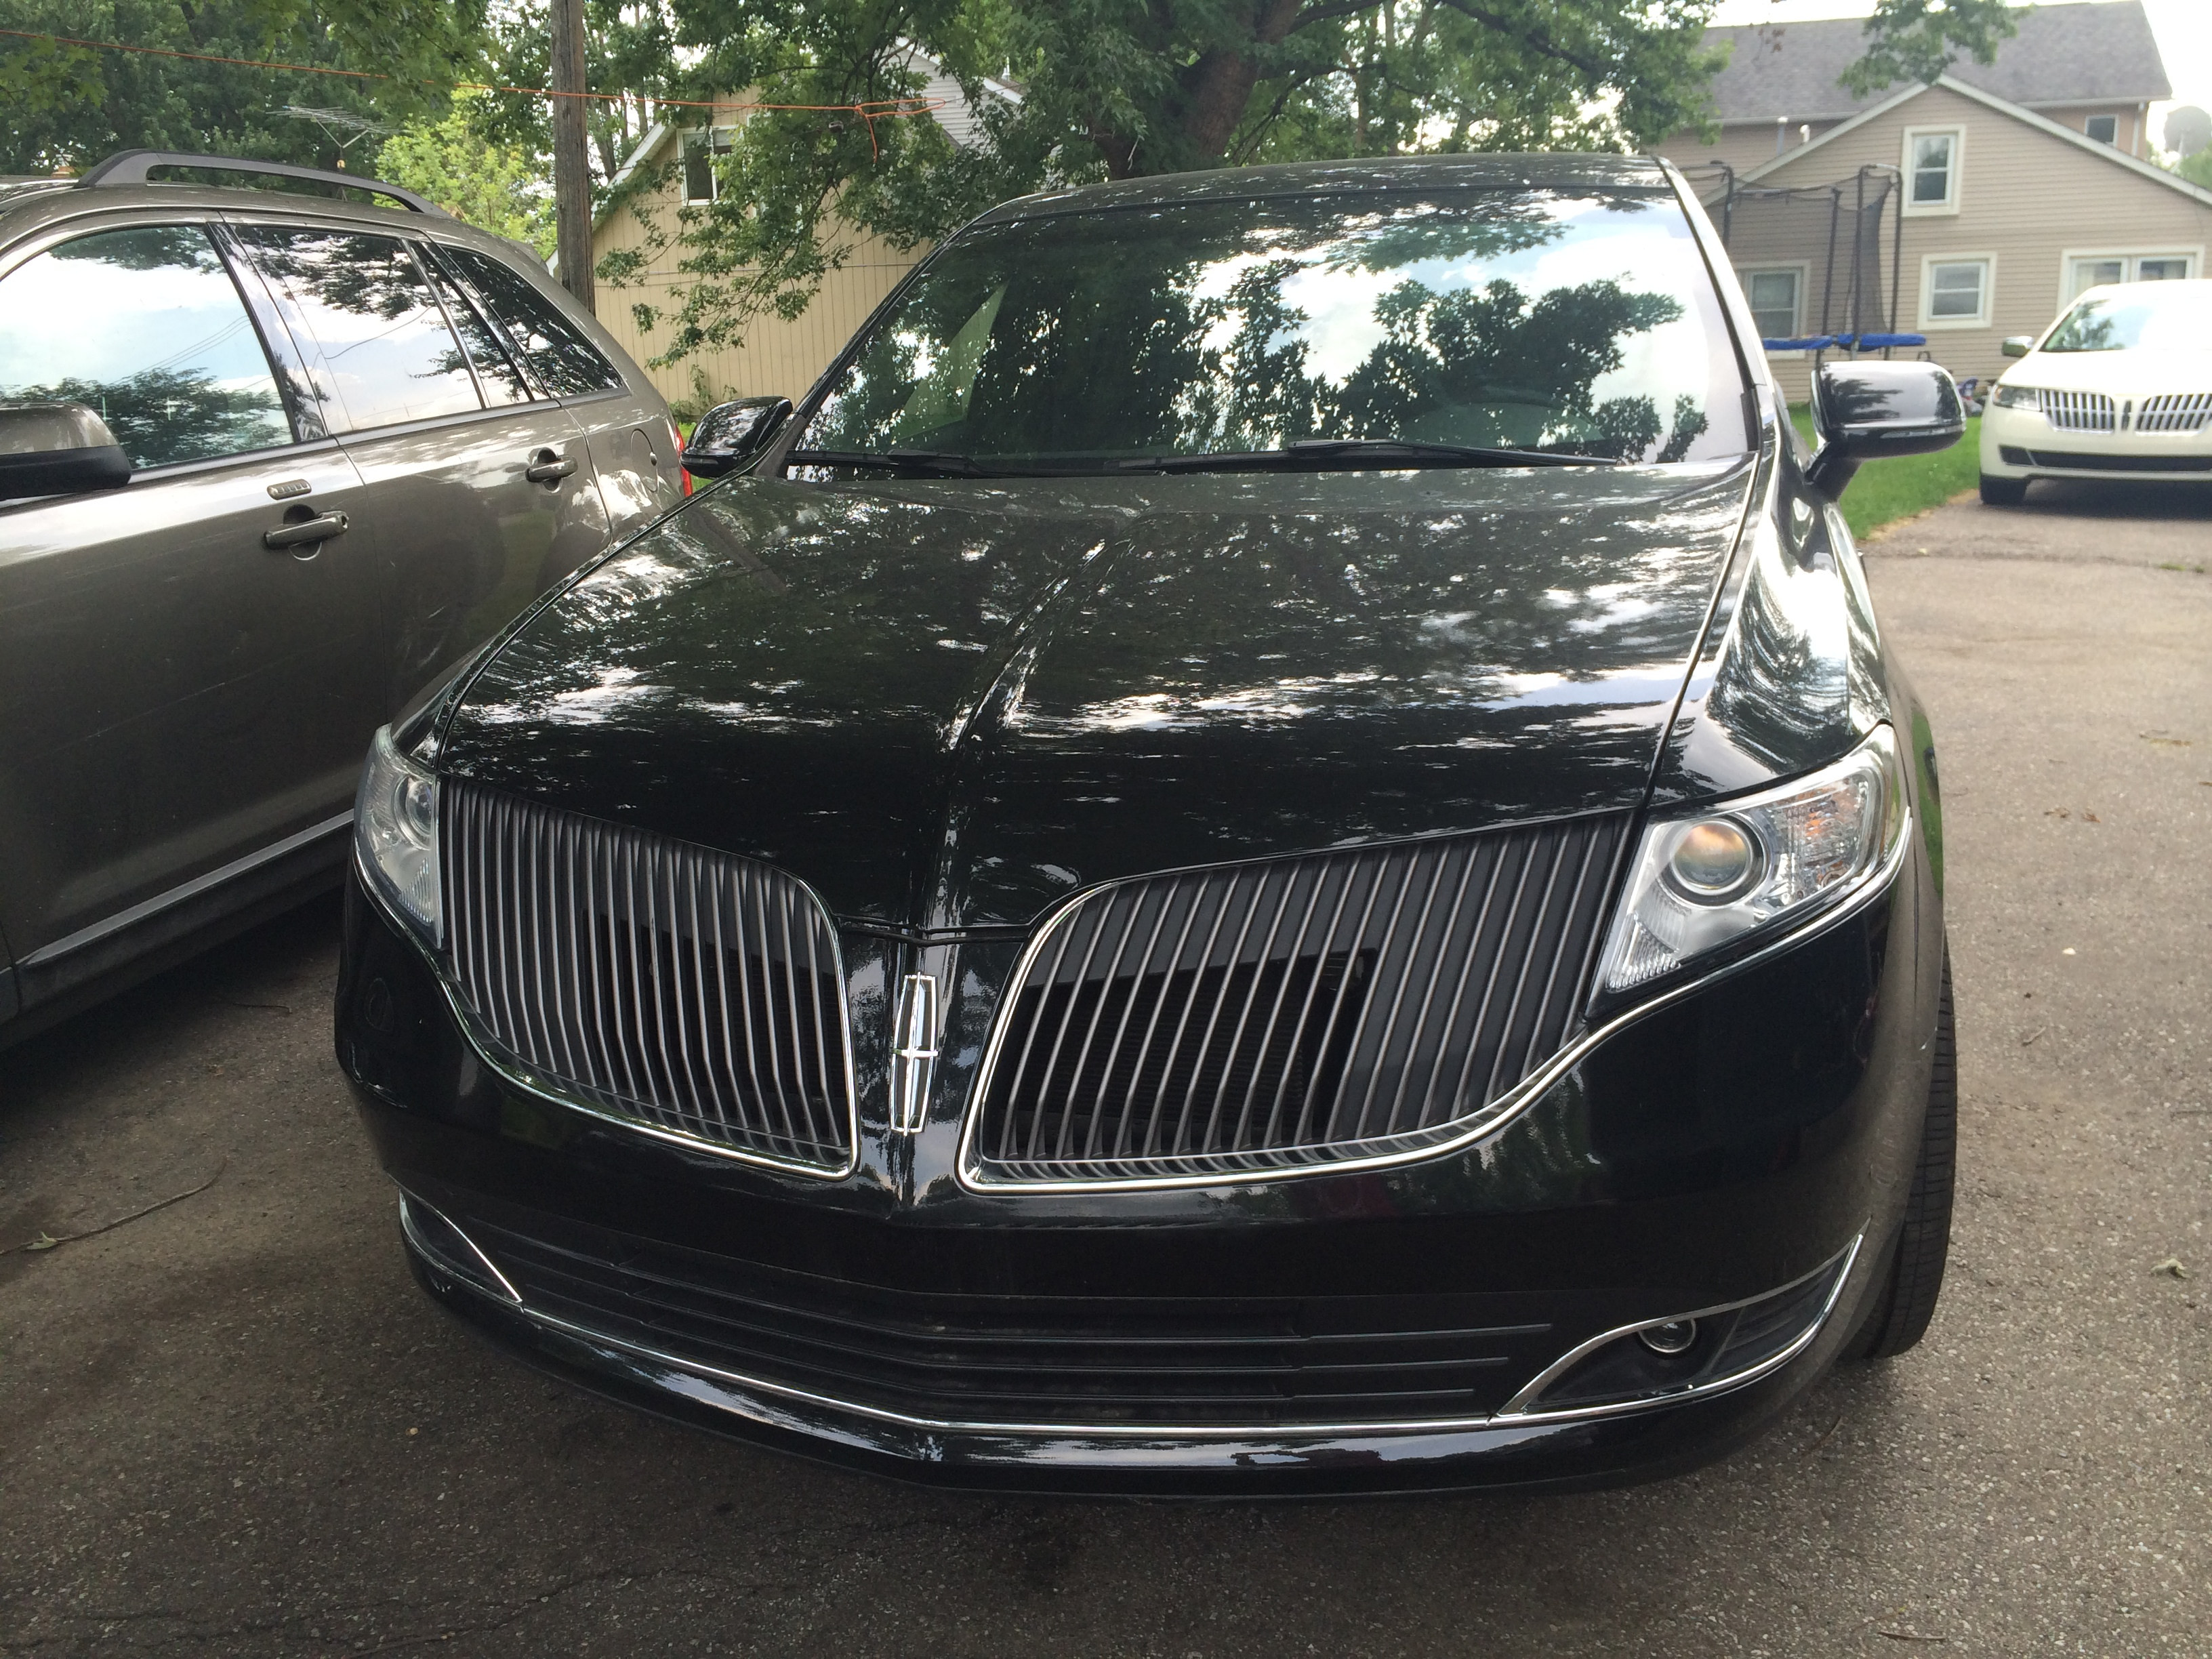 sale for in htm vehicles crossover bud select mkc shell featured index lincoln mkt dexter mo